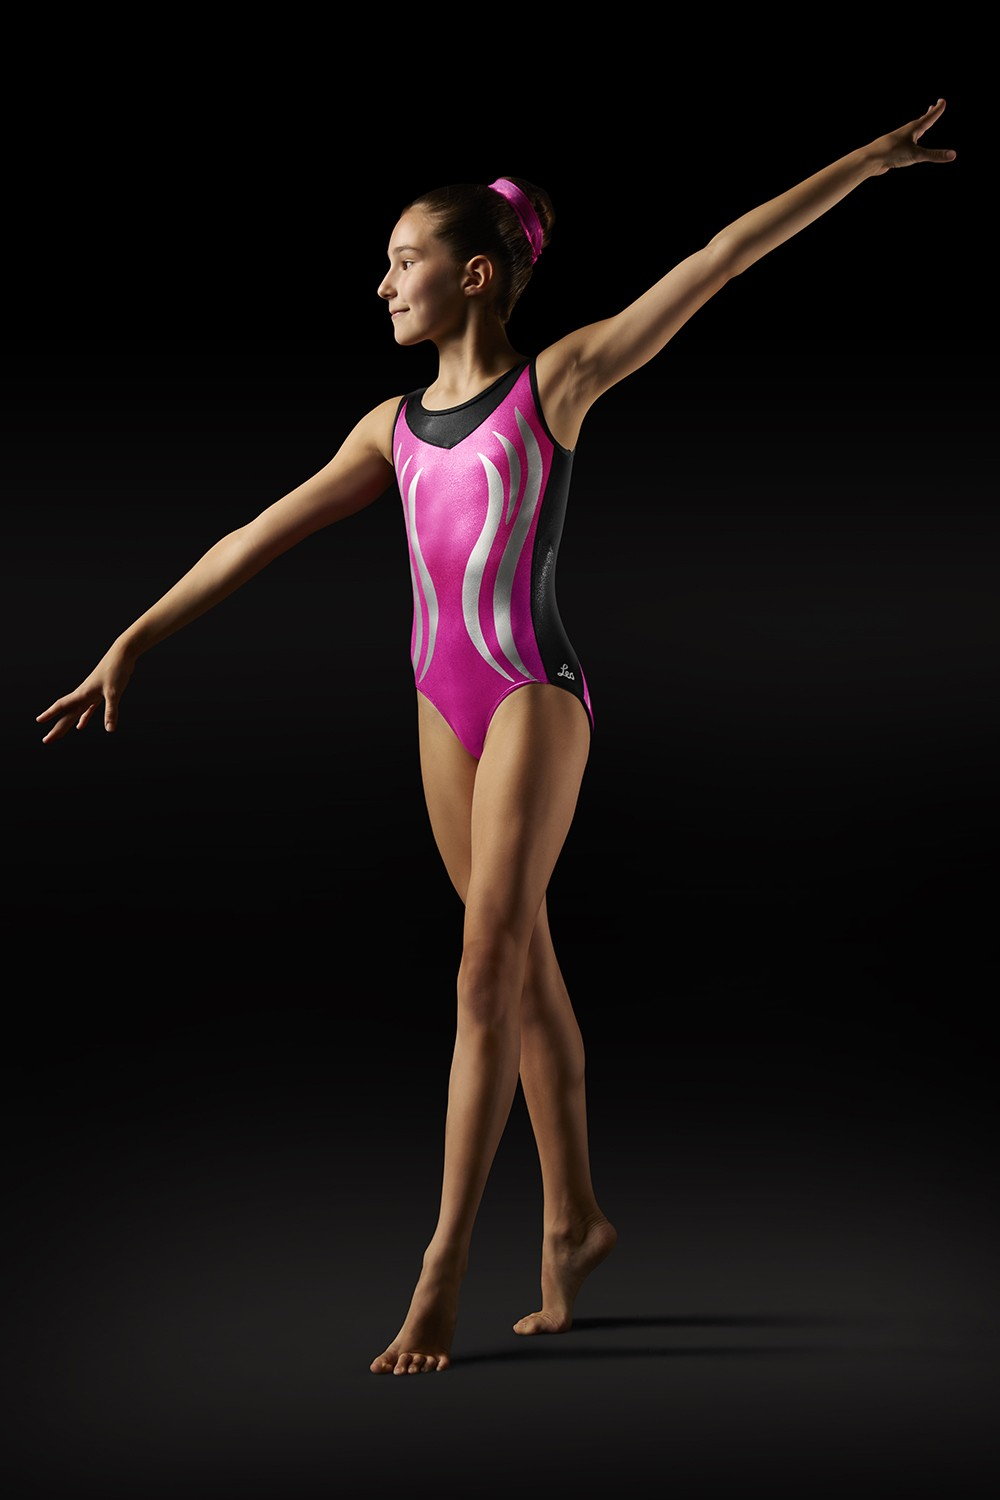 Flame Tank Leotard - Girls Girl's Gymnastics Leotards